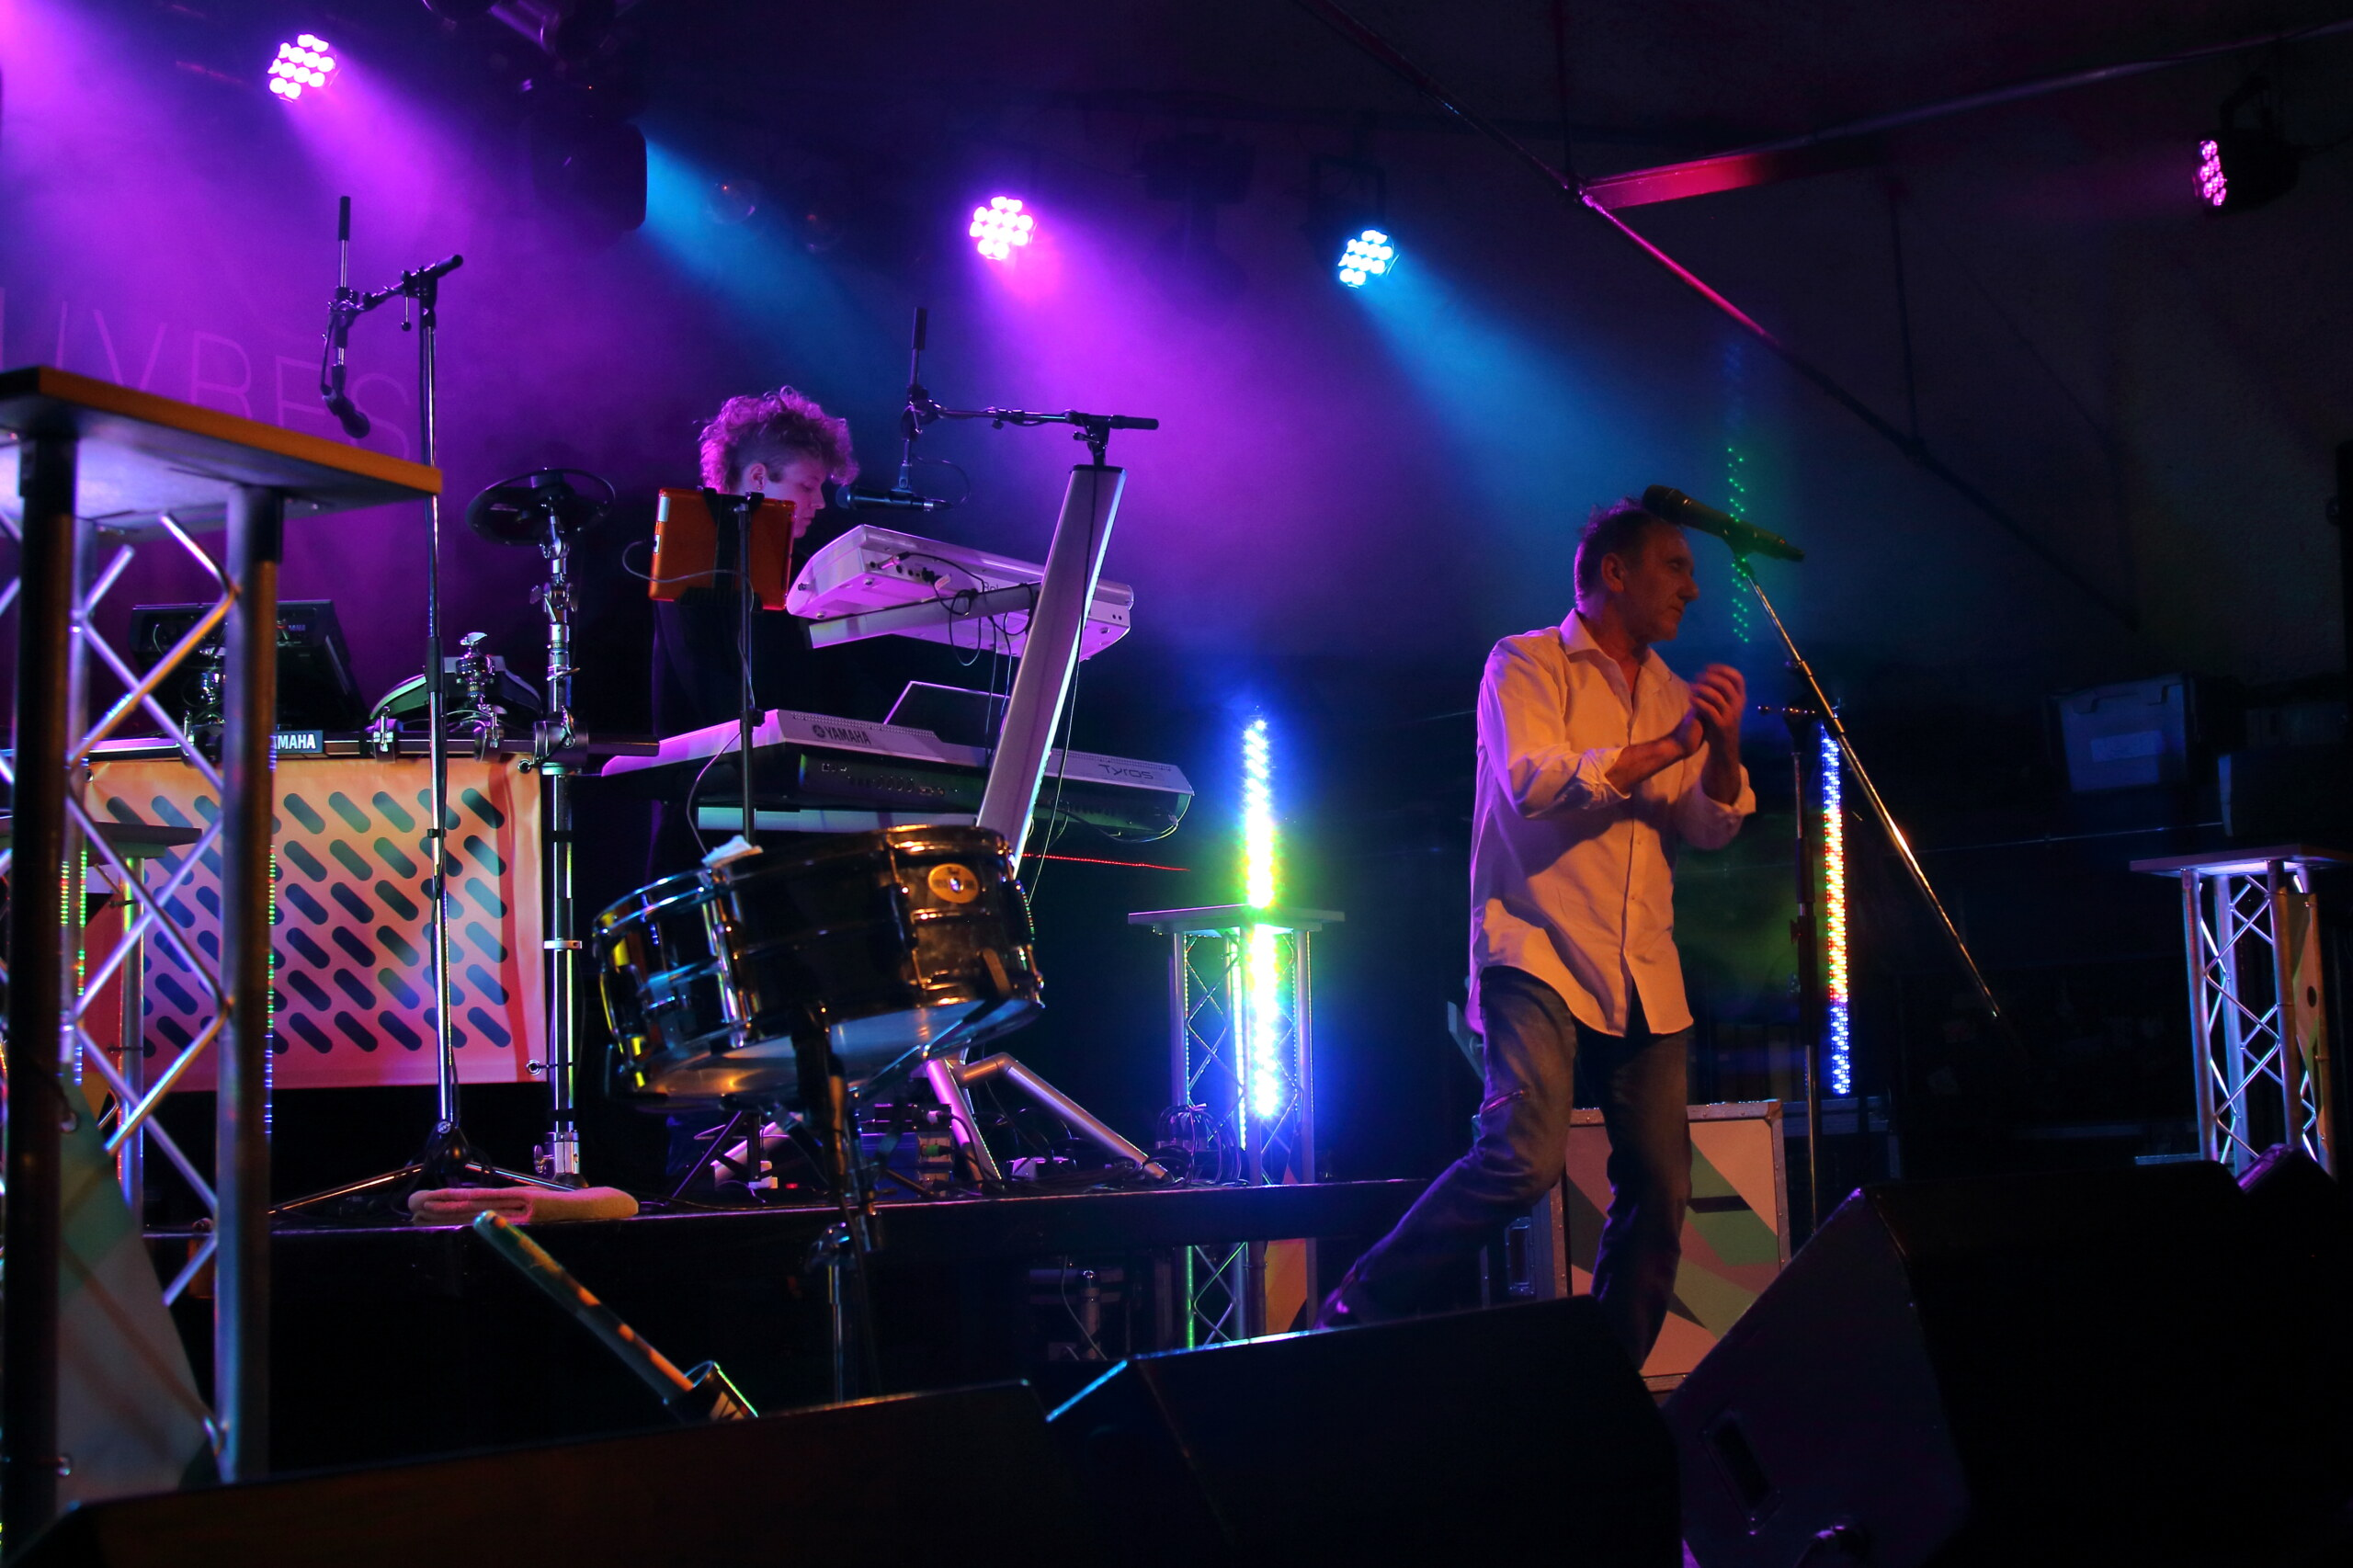 Manoeuvres - Tribute to Orchestral Manoeuvres In The Dark